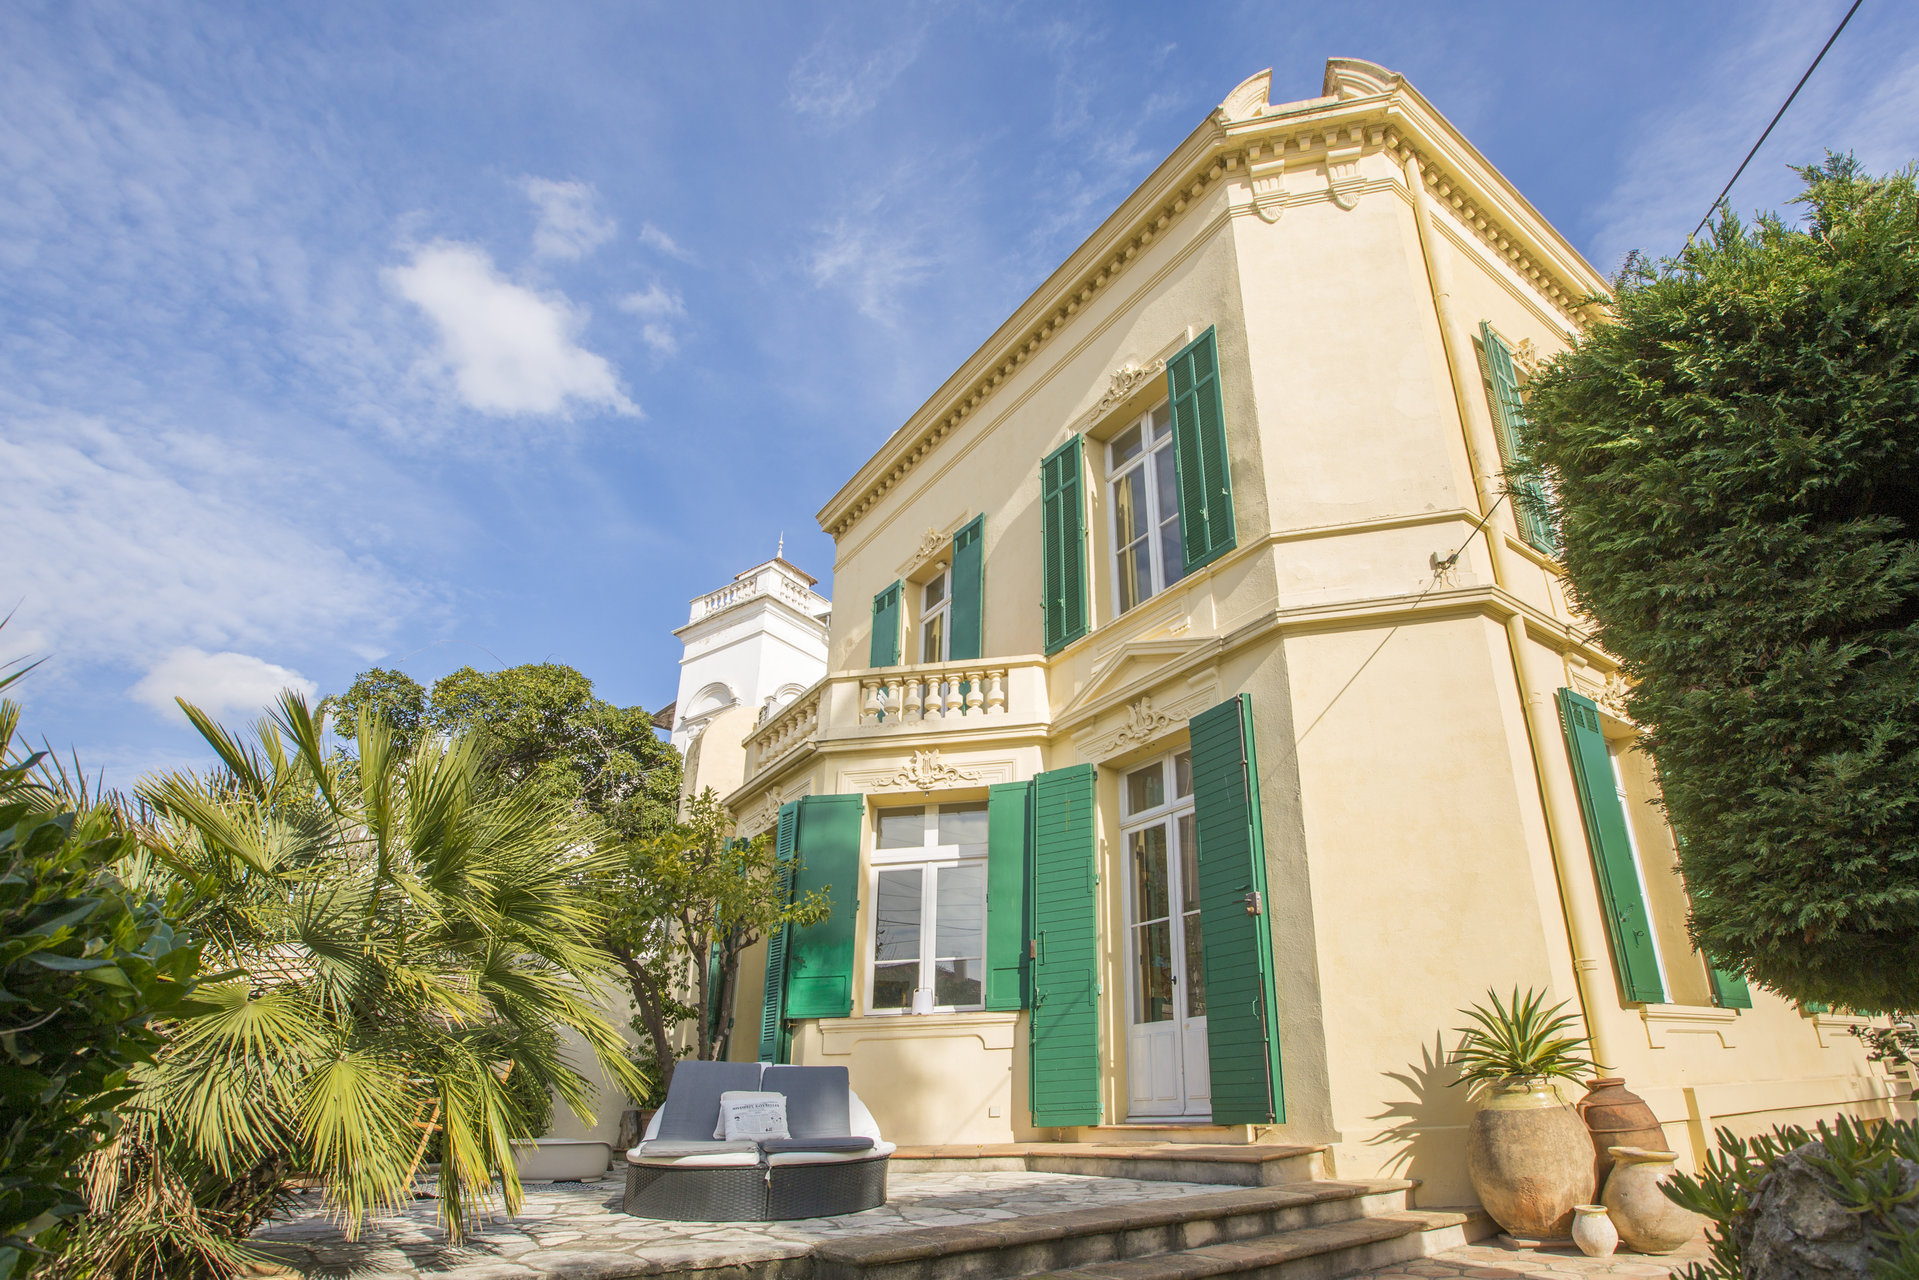 Renovated bourgeois town house, just 5 mins walk from the Forville Market in Cannes